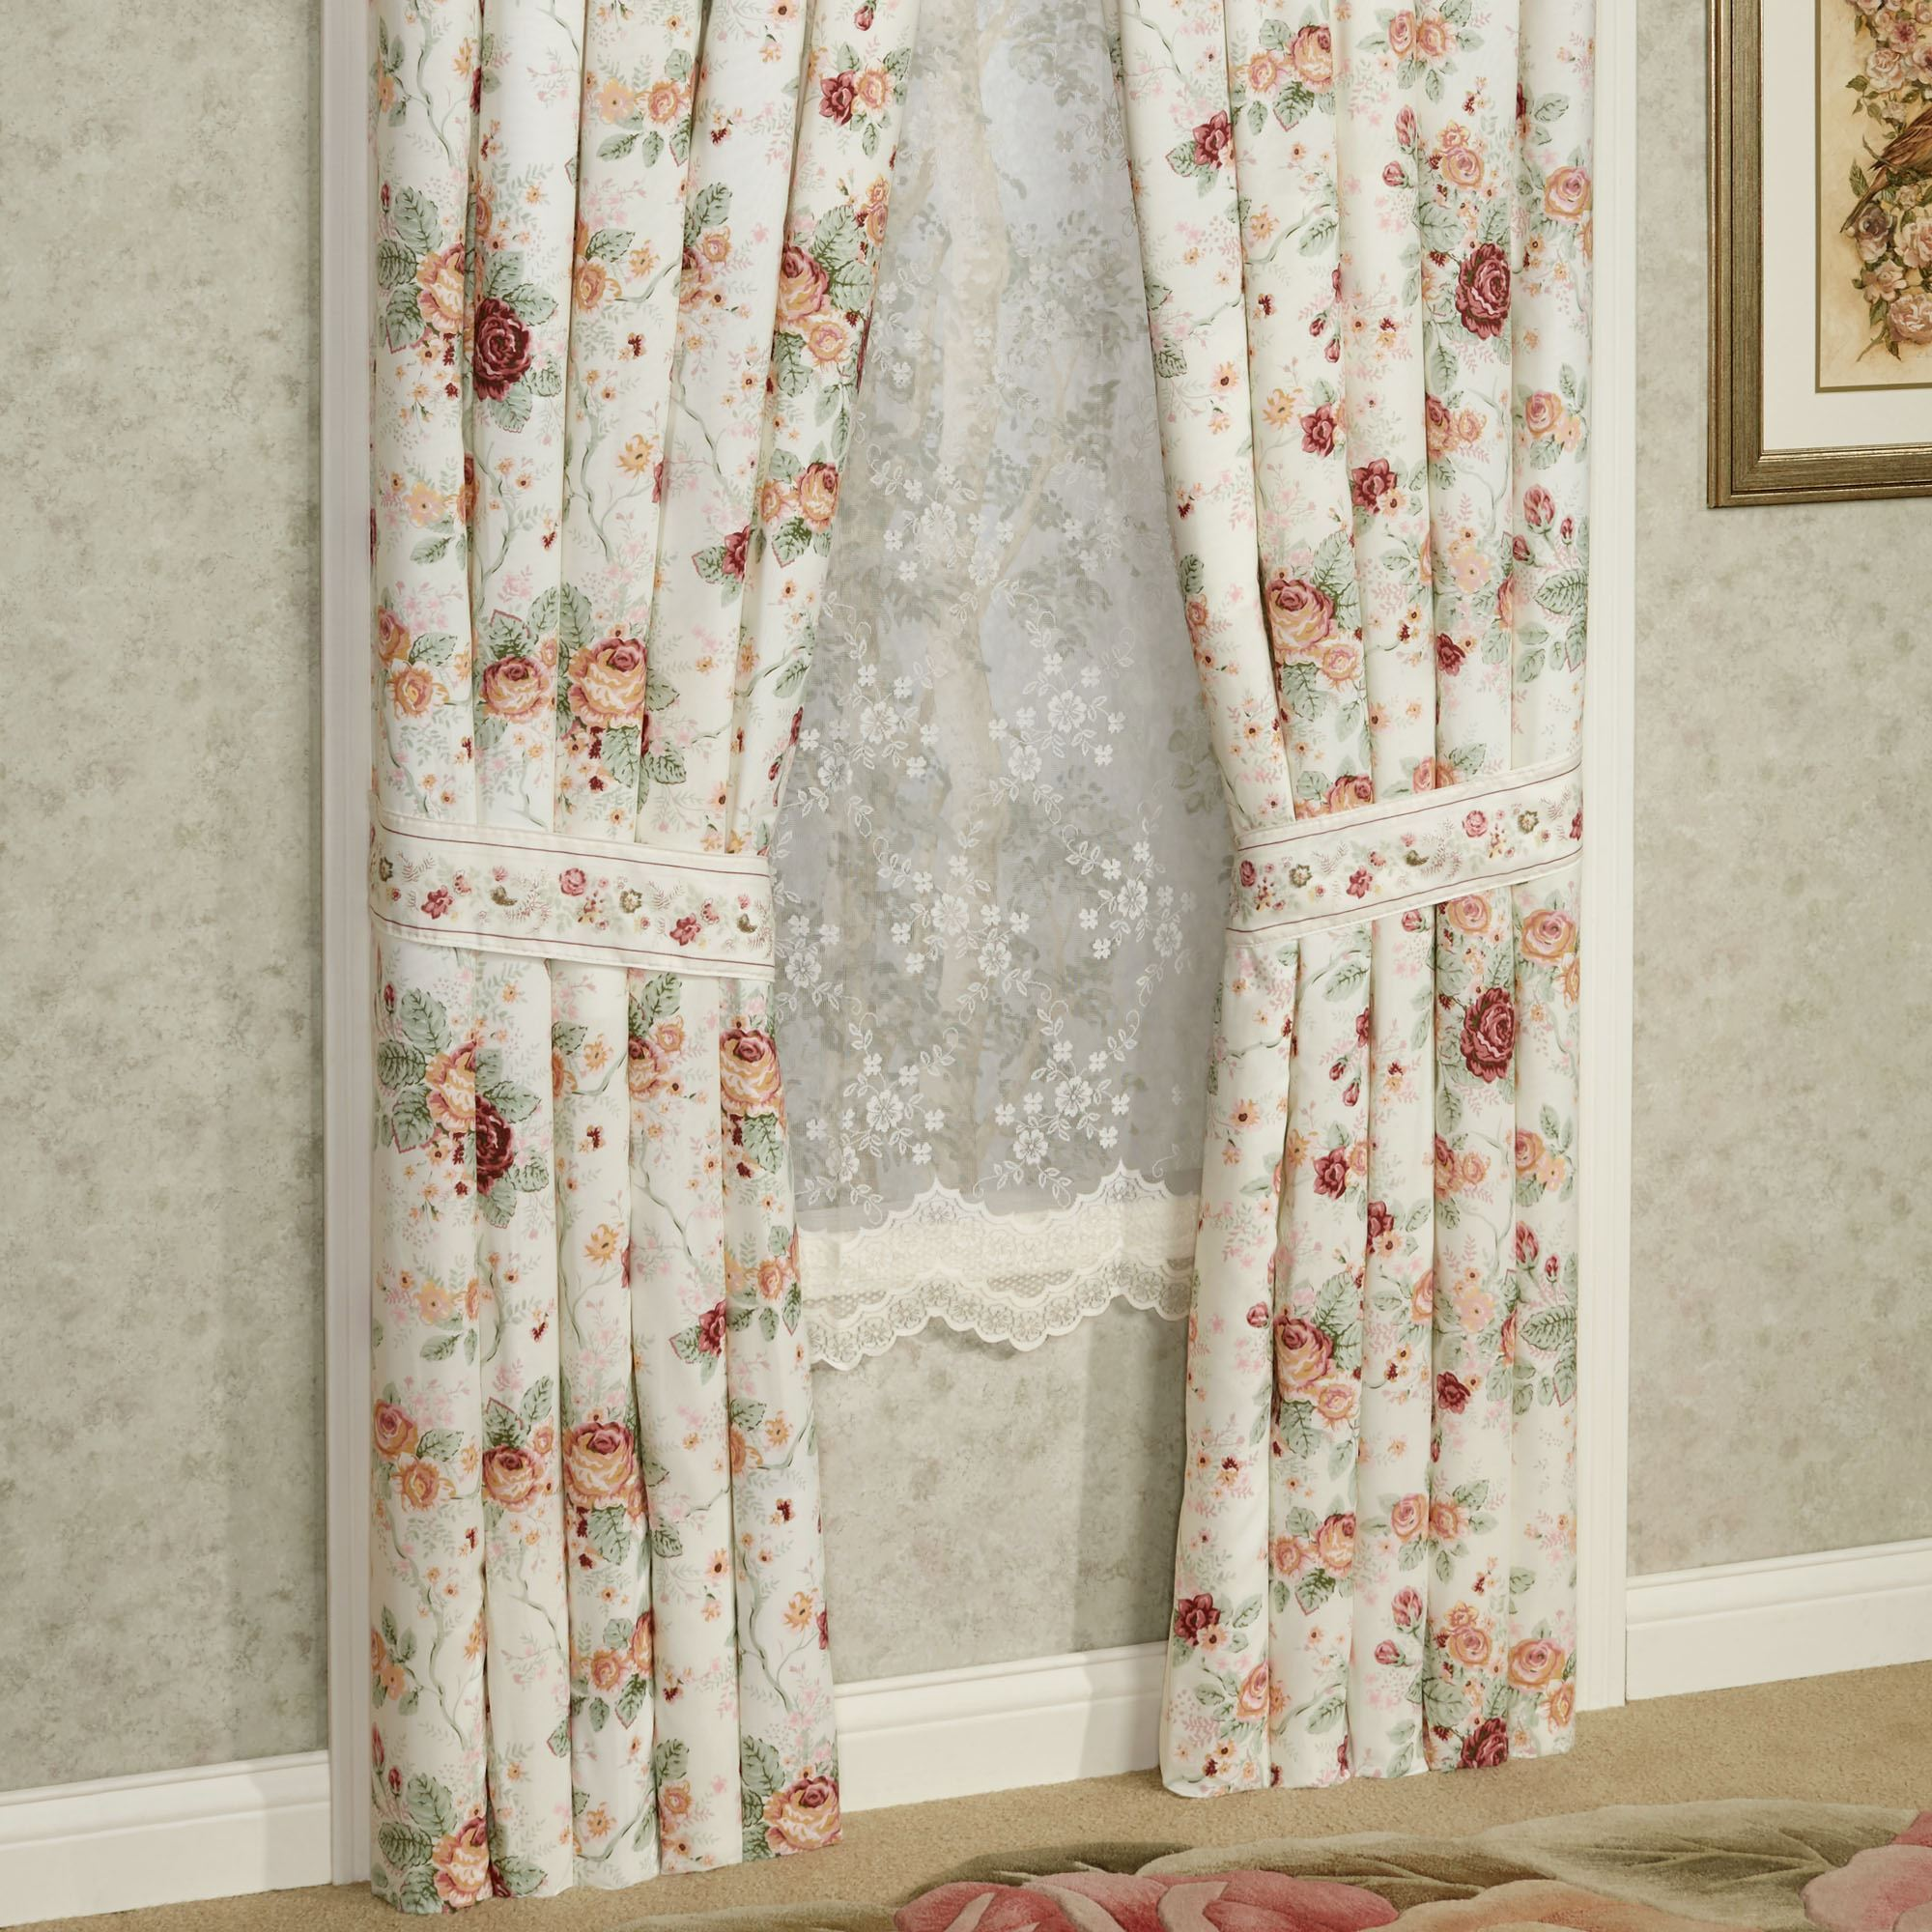 curtain full blackout cheap for valance target window room of ideas attached under living panels threshold matching modern curtains design with size